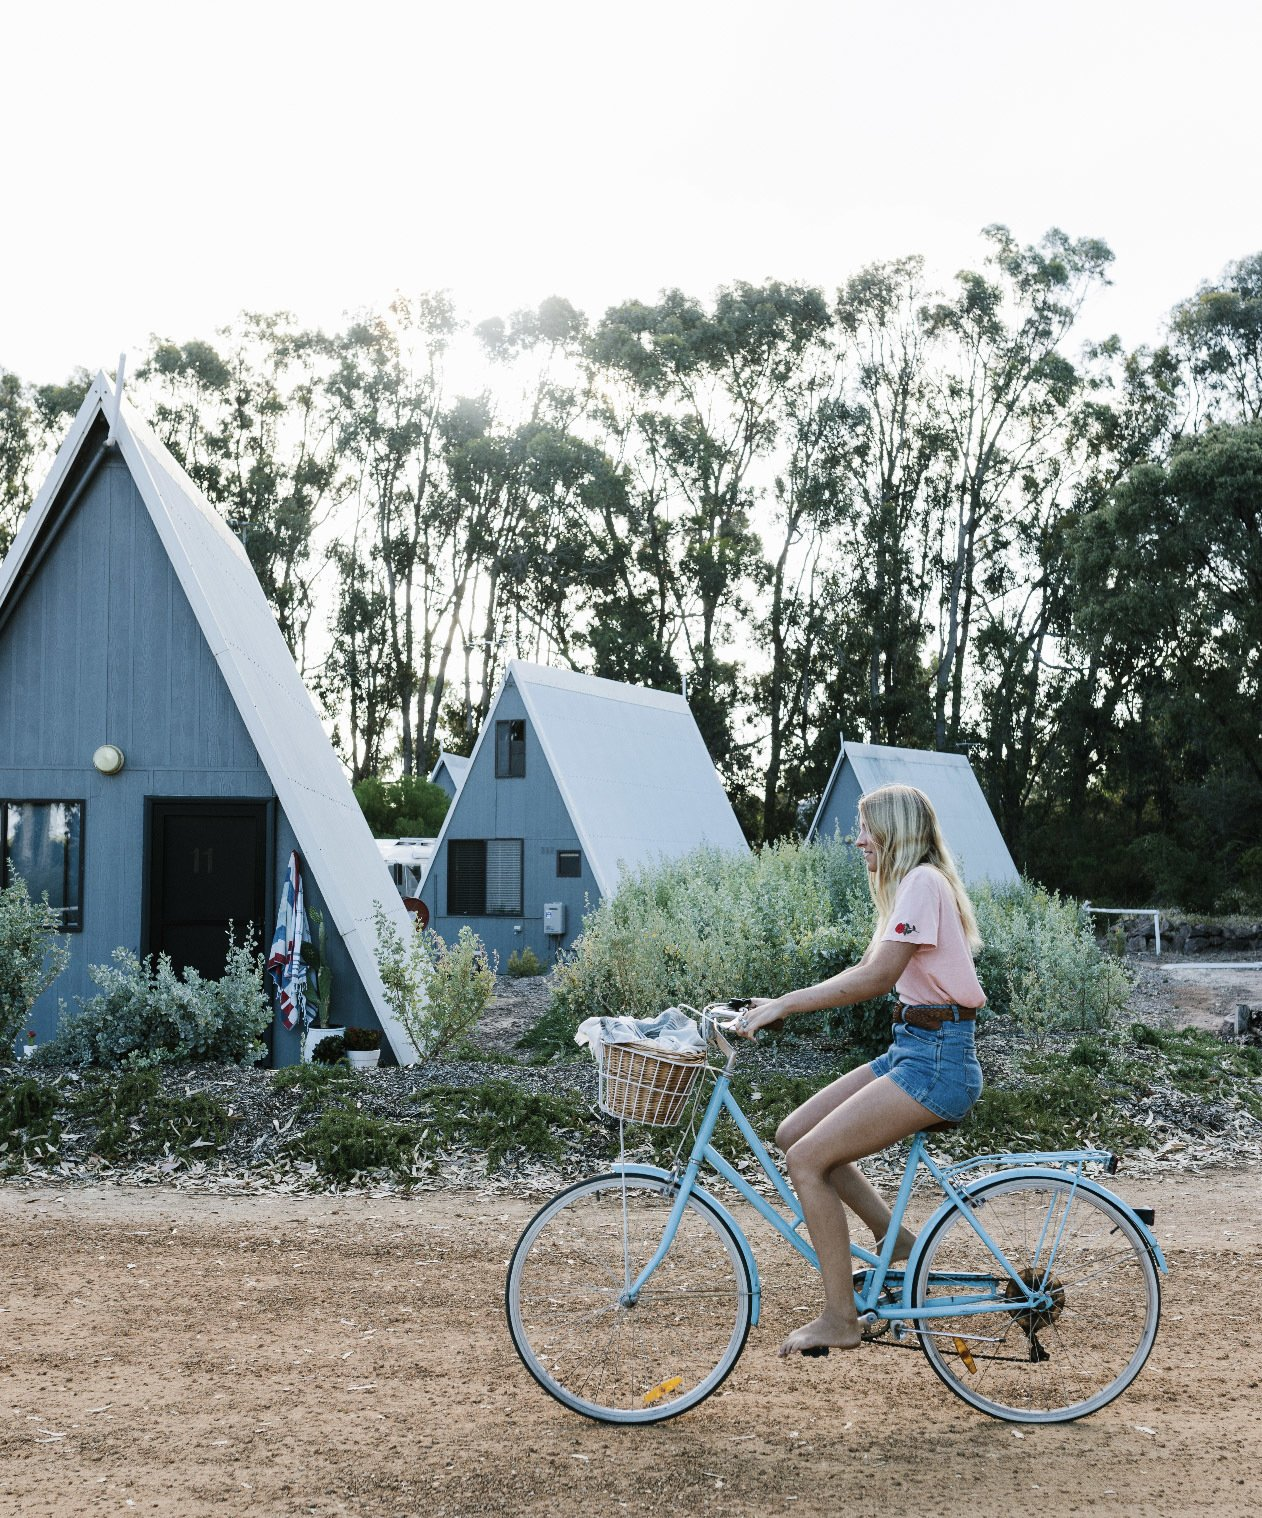 """Exterior, Small Home Building Type, A-Frame RoofLine, Wood Siding Material, Metal Roof Material, and Cabin Building Type Esperance Chalet Village is located in the southwestern coastal town of Esperance, Australia. The compound features a mix of A-frames and other structures updated by <span style=""""font-family: Theinhardt, -apple-system, BlinkMacSystemFont, &quot;Segoe UI&quot;, Roboto, Oxygen-Sans, Ubuntu, Cantarell, &quot;Helvetica Neue&quot;, sans-serif;"""">Fiona and Matt Shillington, who purchased the property after moving to the area from Sydney five years ago.</span><span style=""""font-family: Theinhardt, -apple-system, BlinkMacSystemFont, &quot;Segoe UI&quot;, Roboto, Oxygen-Sans, Ubuntu, Cantarell, &quot;Helvetica Neue&quot;, sans-serif;""""> </span>  Photo 2 of 13 in A Cluster of A-Frames Hugs White Sand Dunes on Australia's Southwestern Coast"""